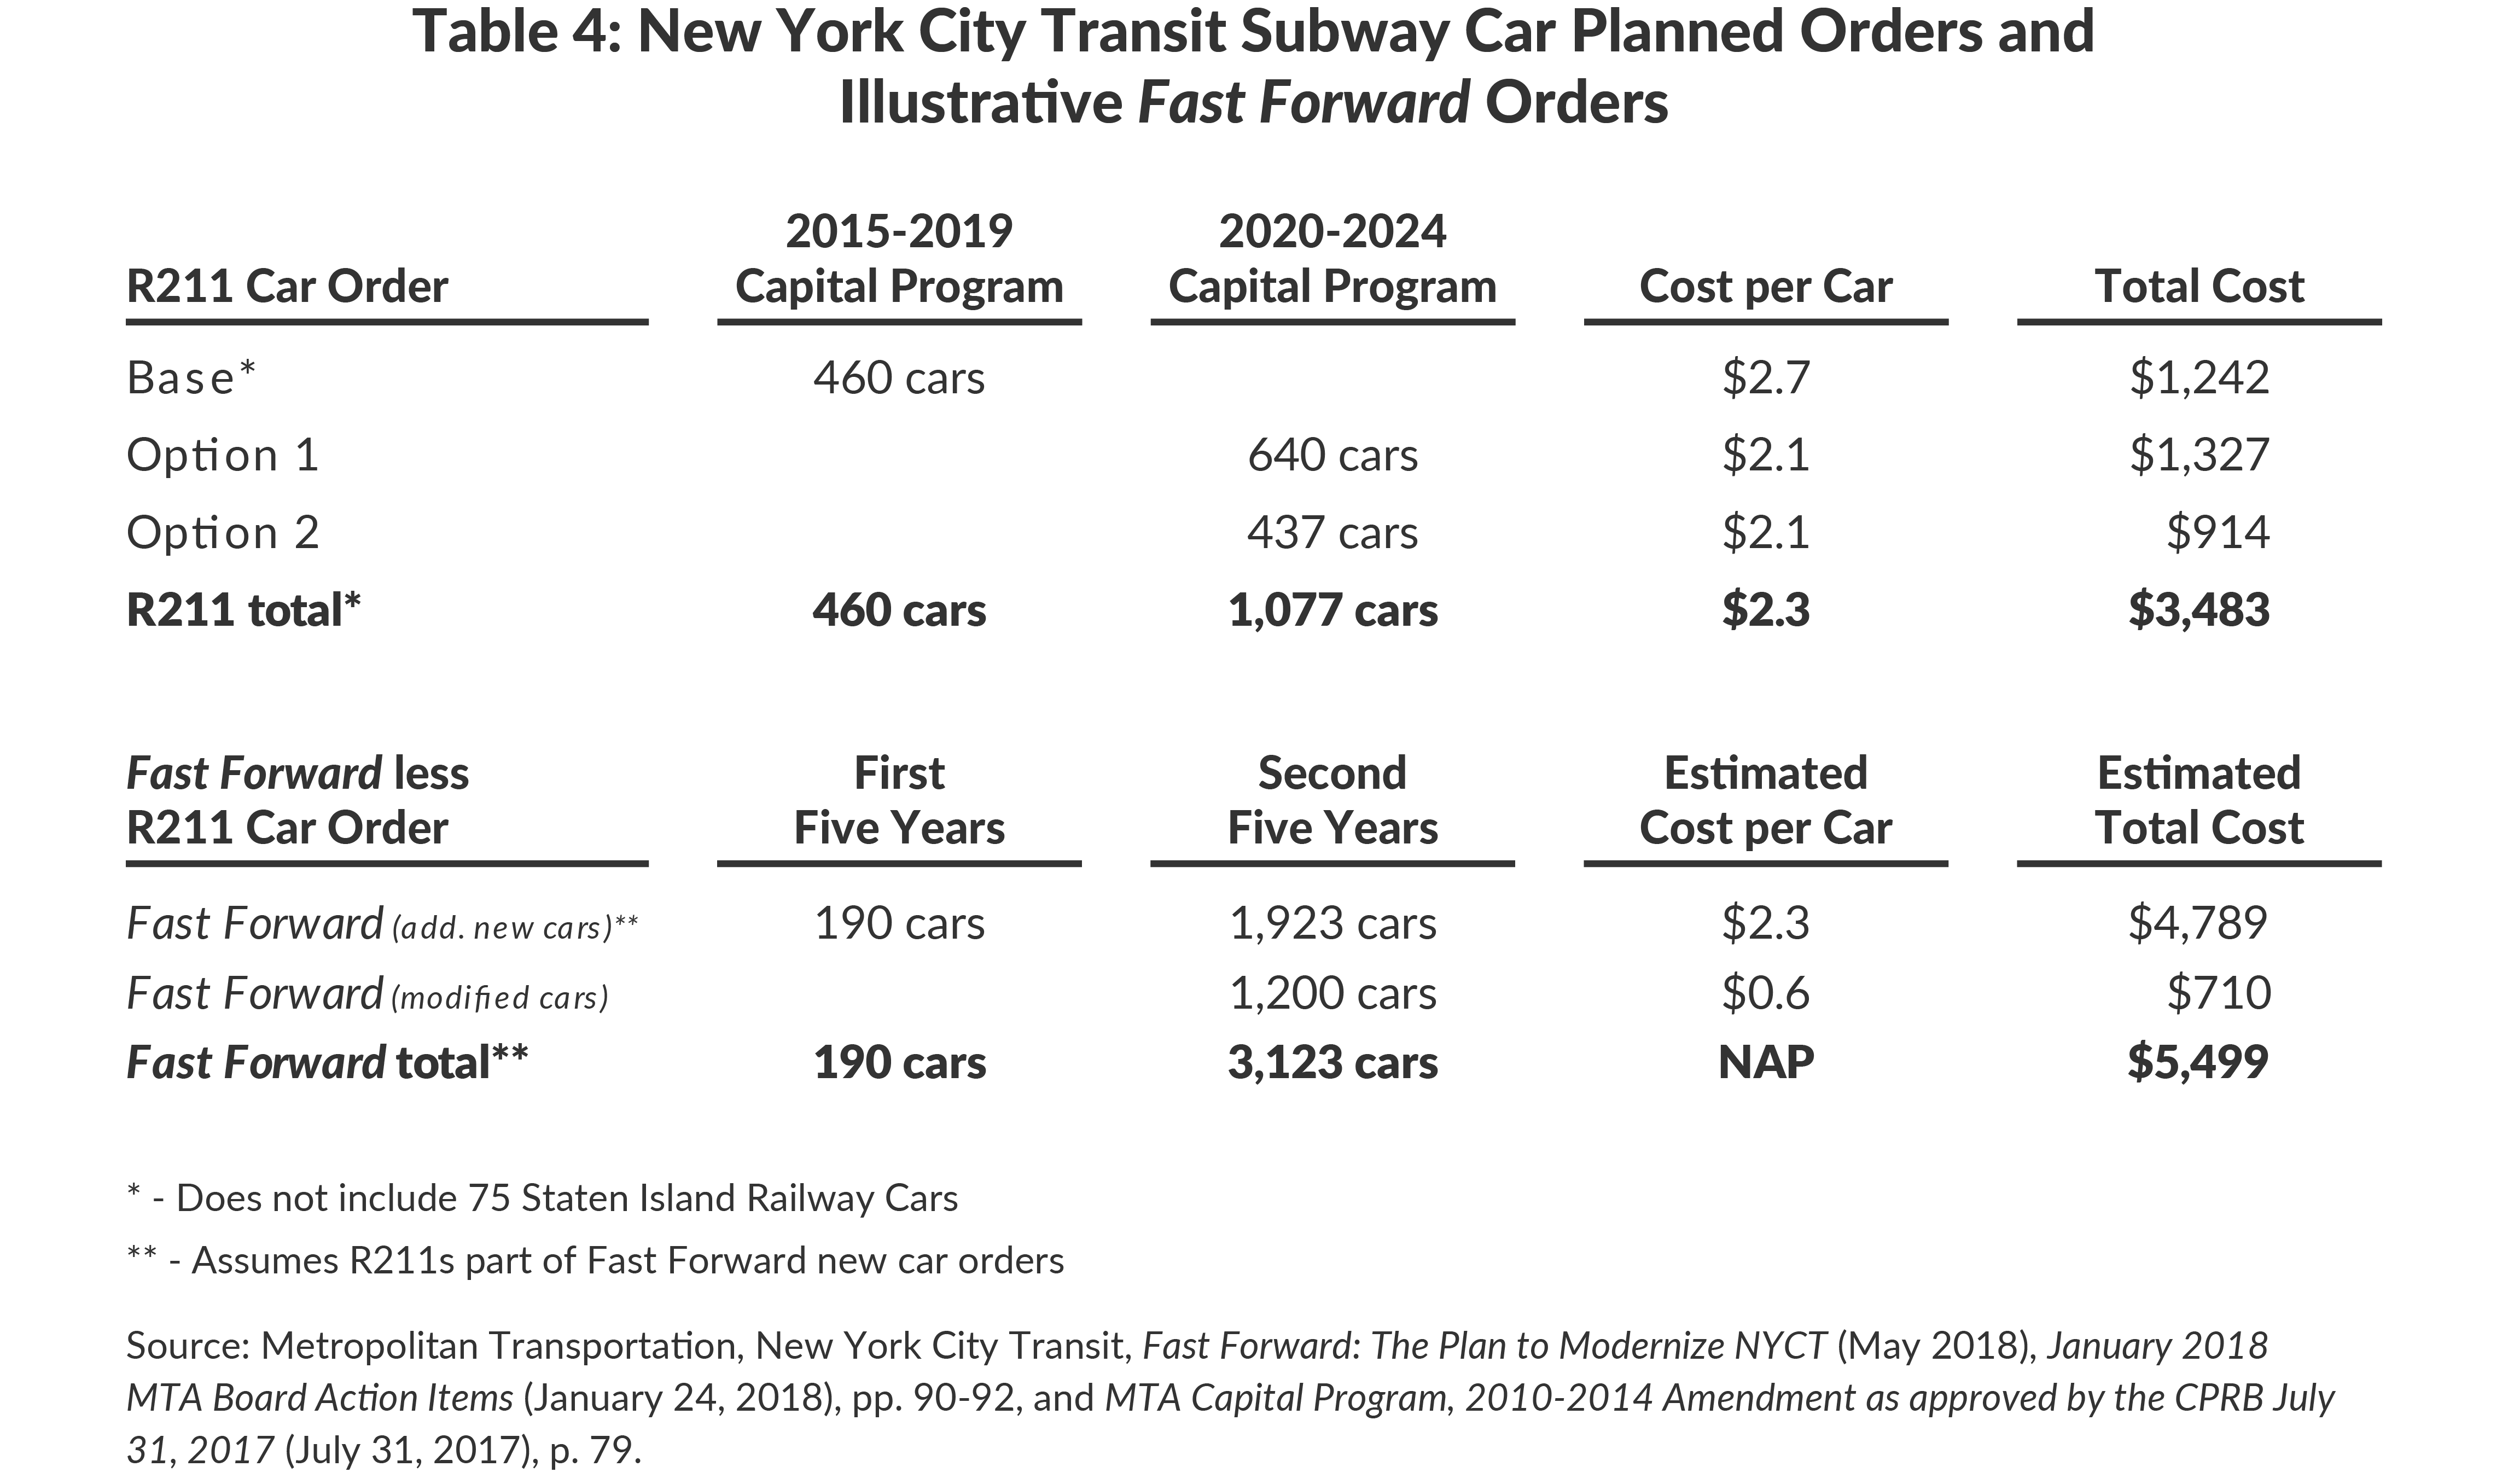 Table 4: New York City Transit Subway Car Planned Orders and Illustrative Fast Forward Orders